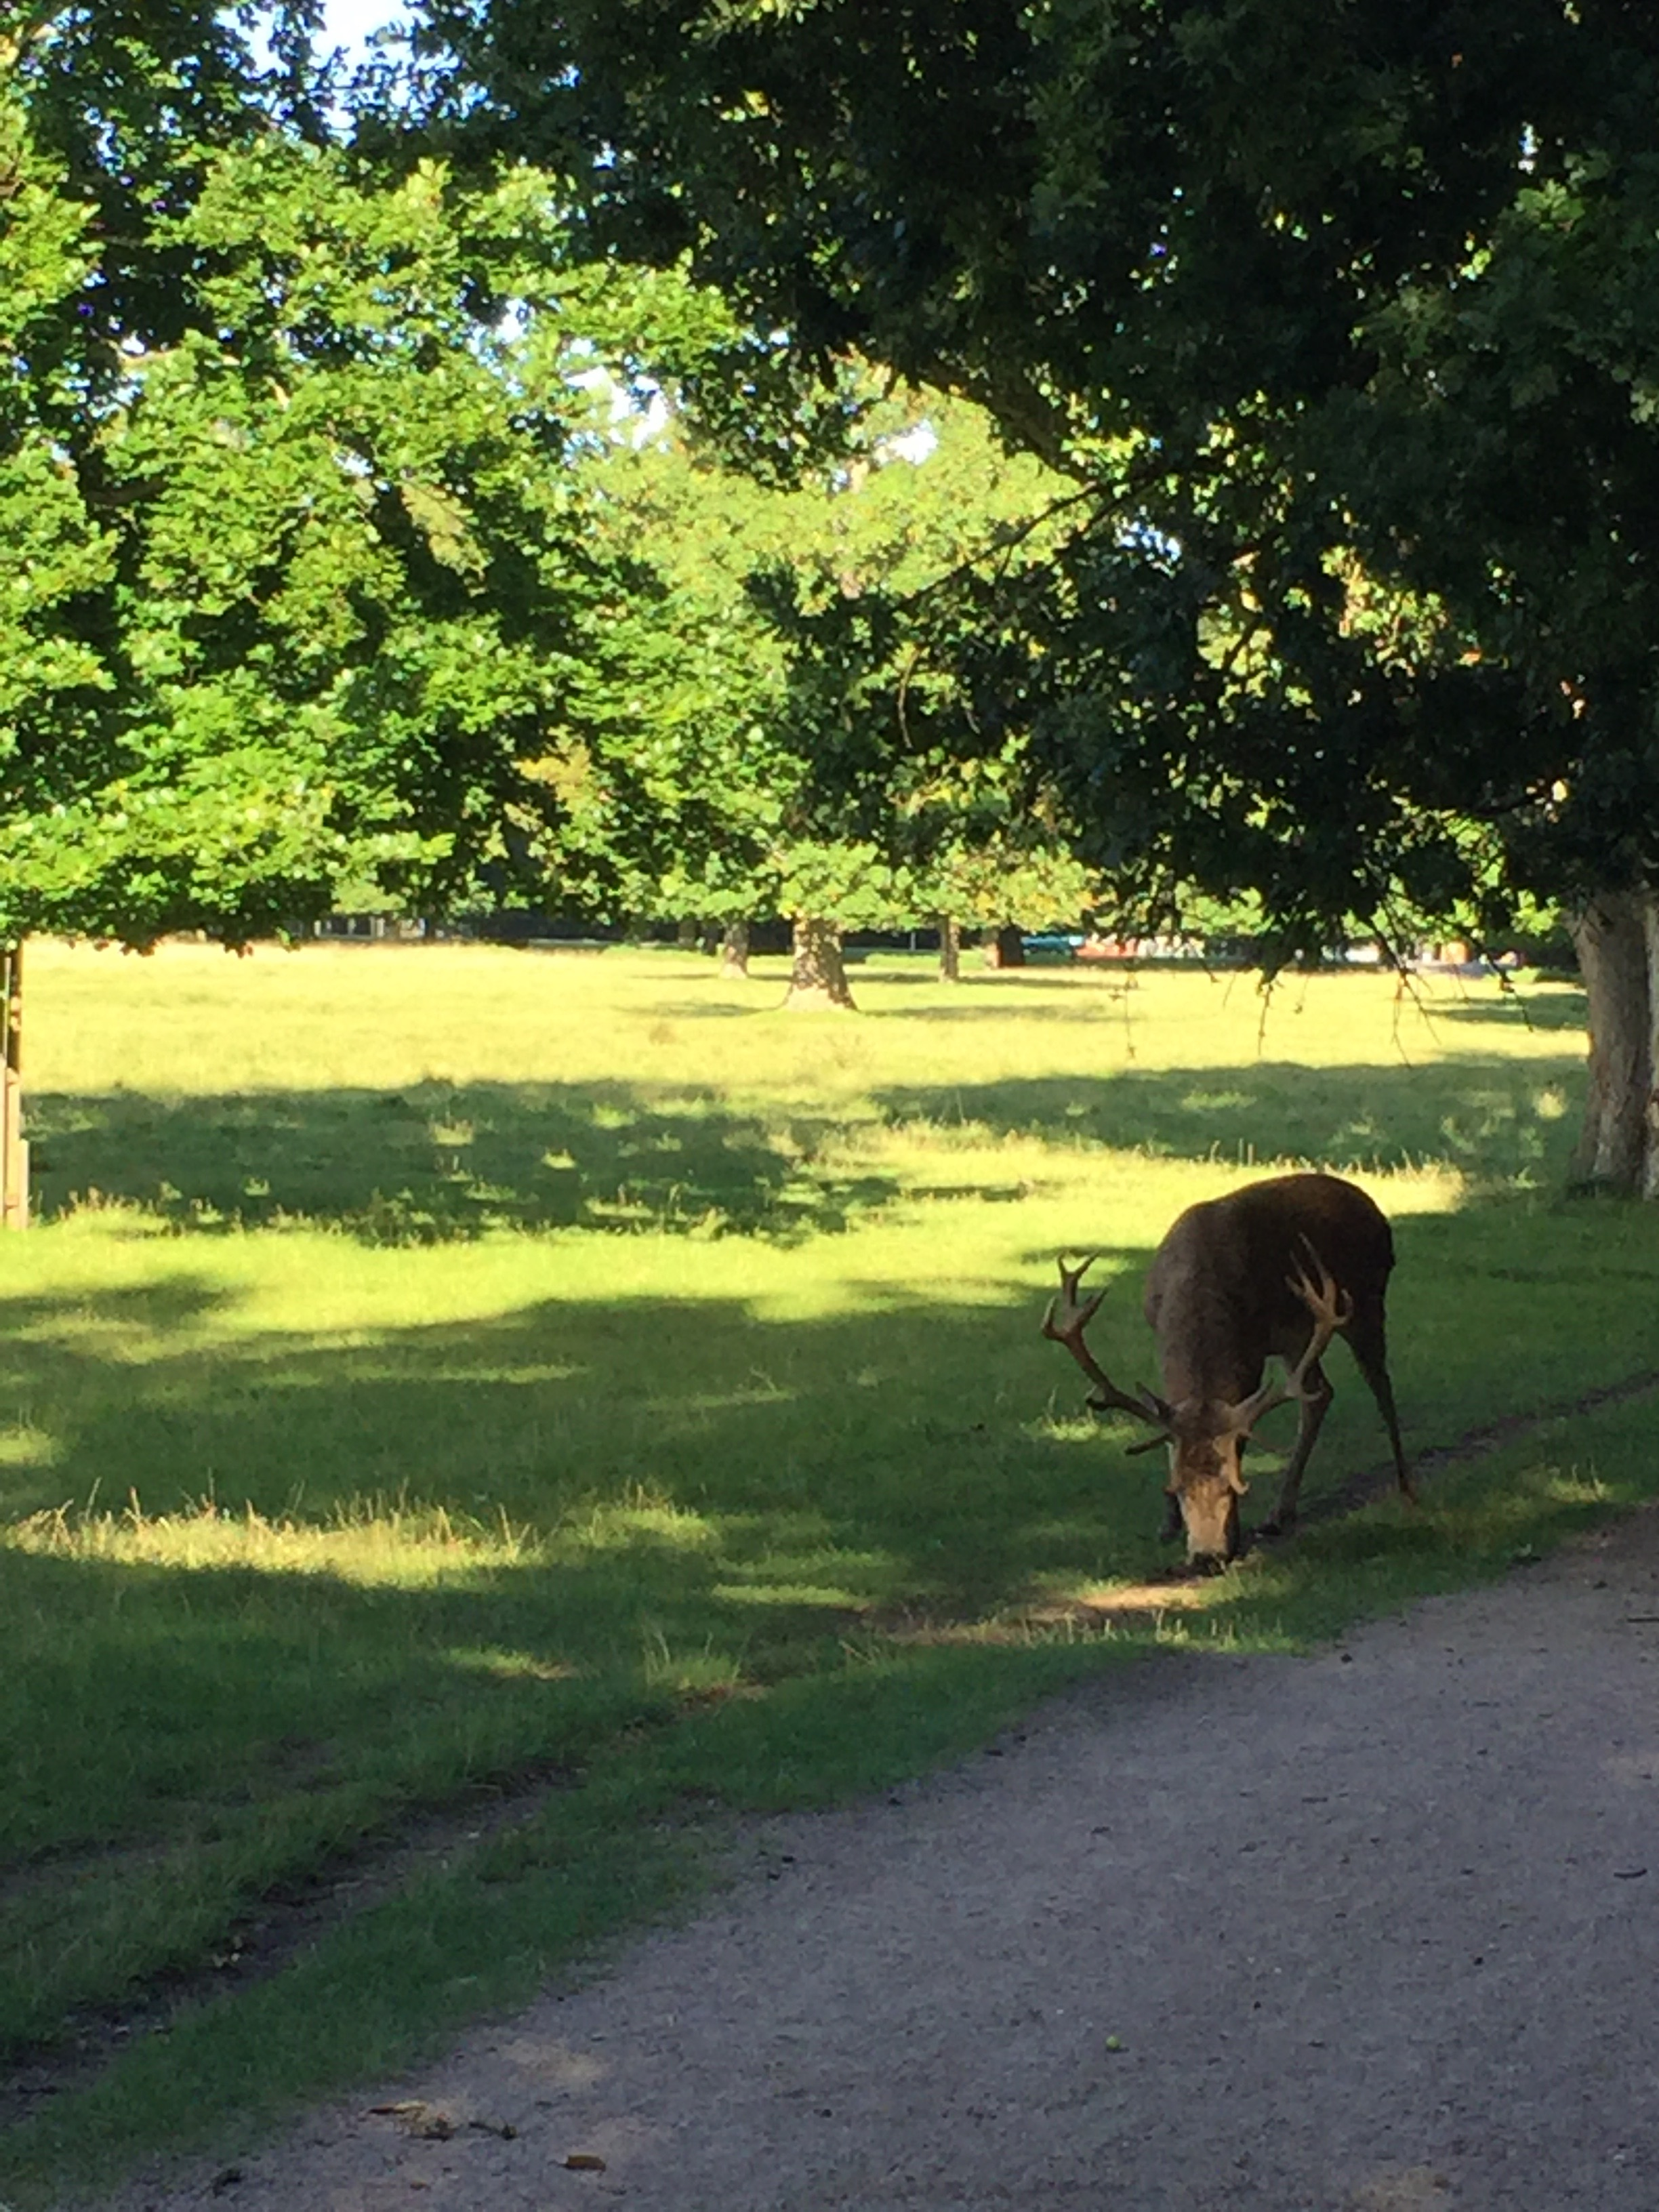 The deer and elk in Bushy Park could care less about the runners passing by